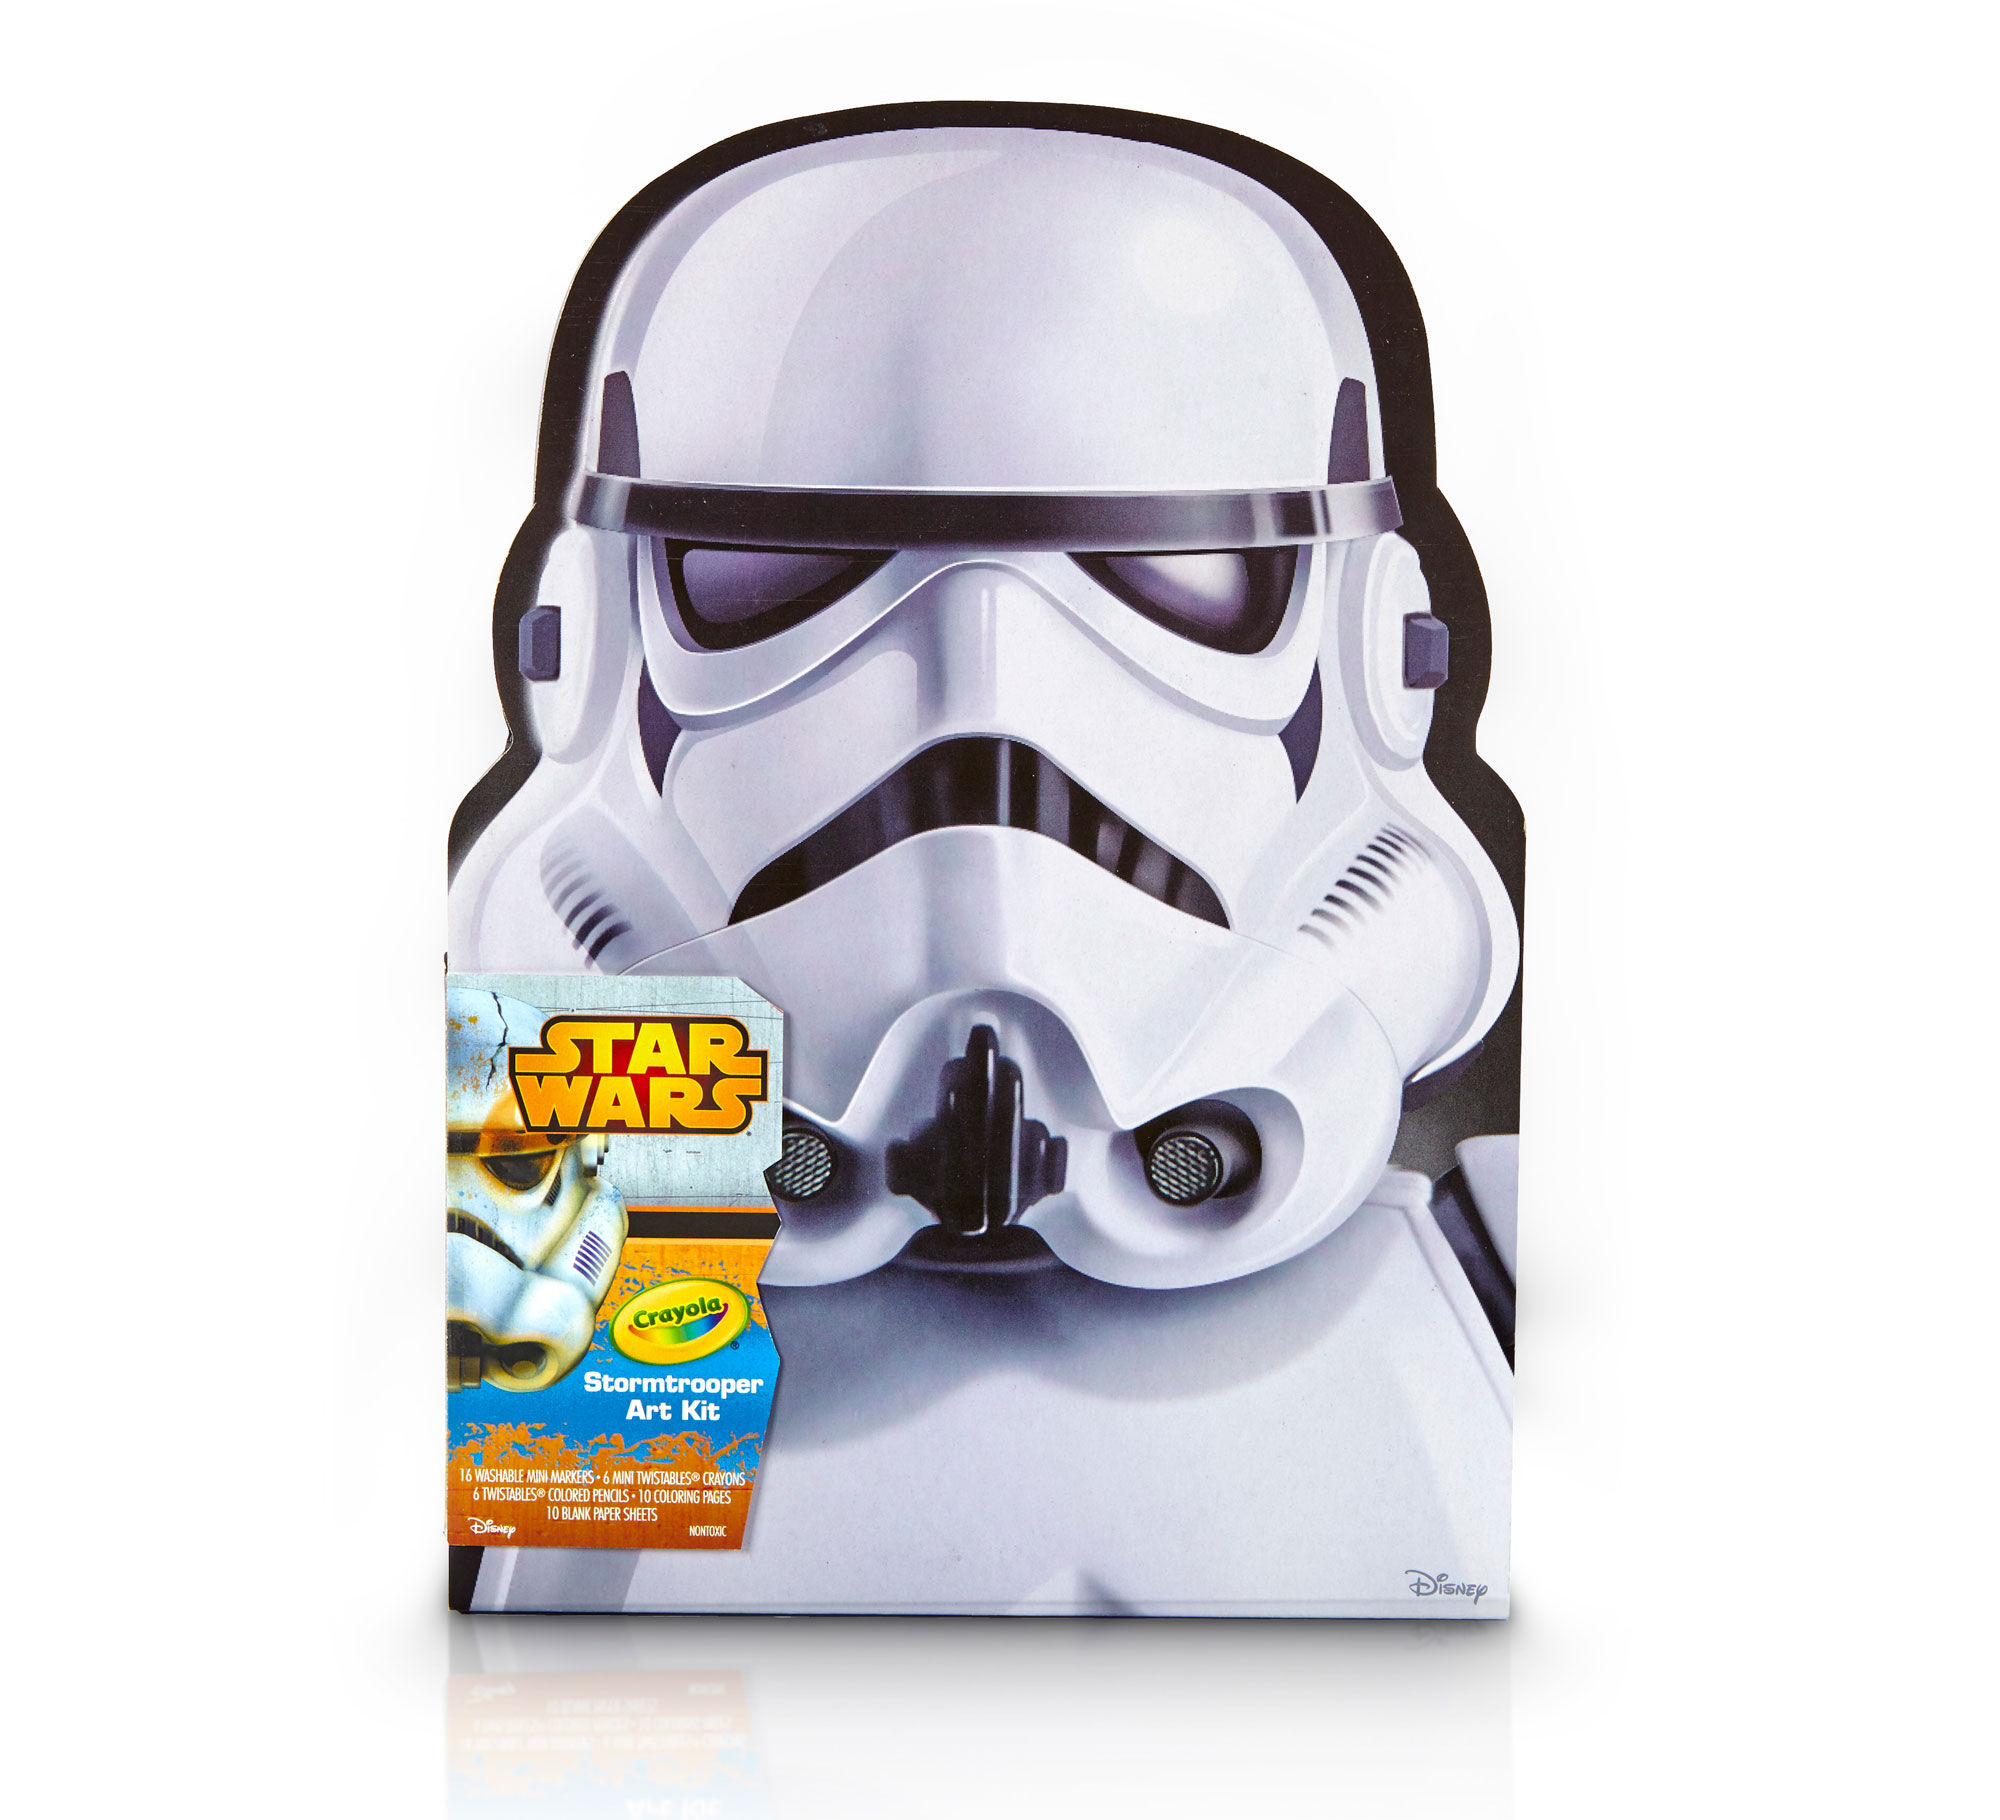 Star Wars Stormtrooper Art Case